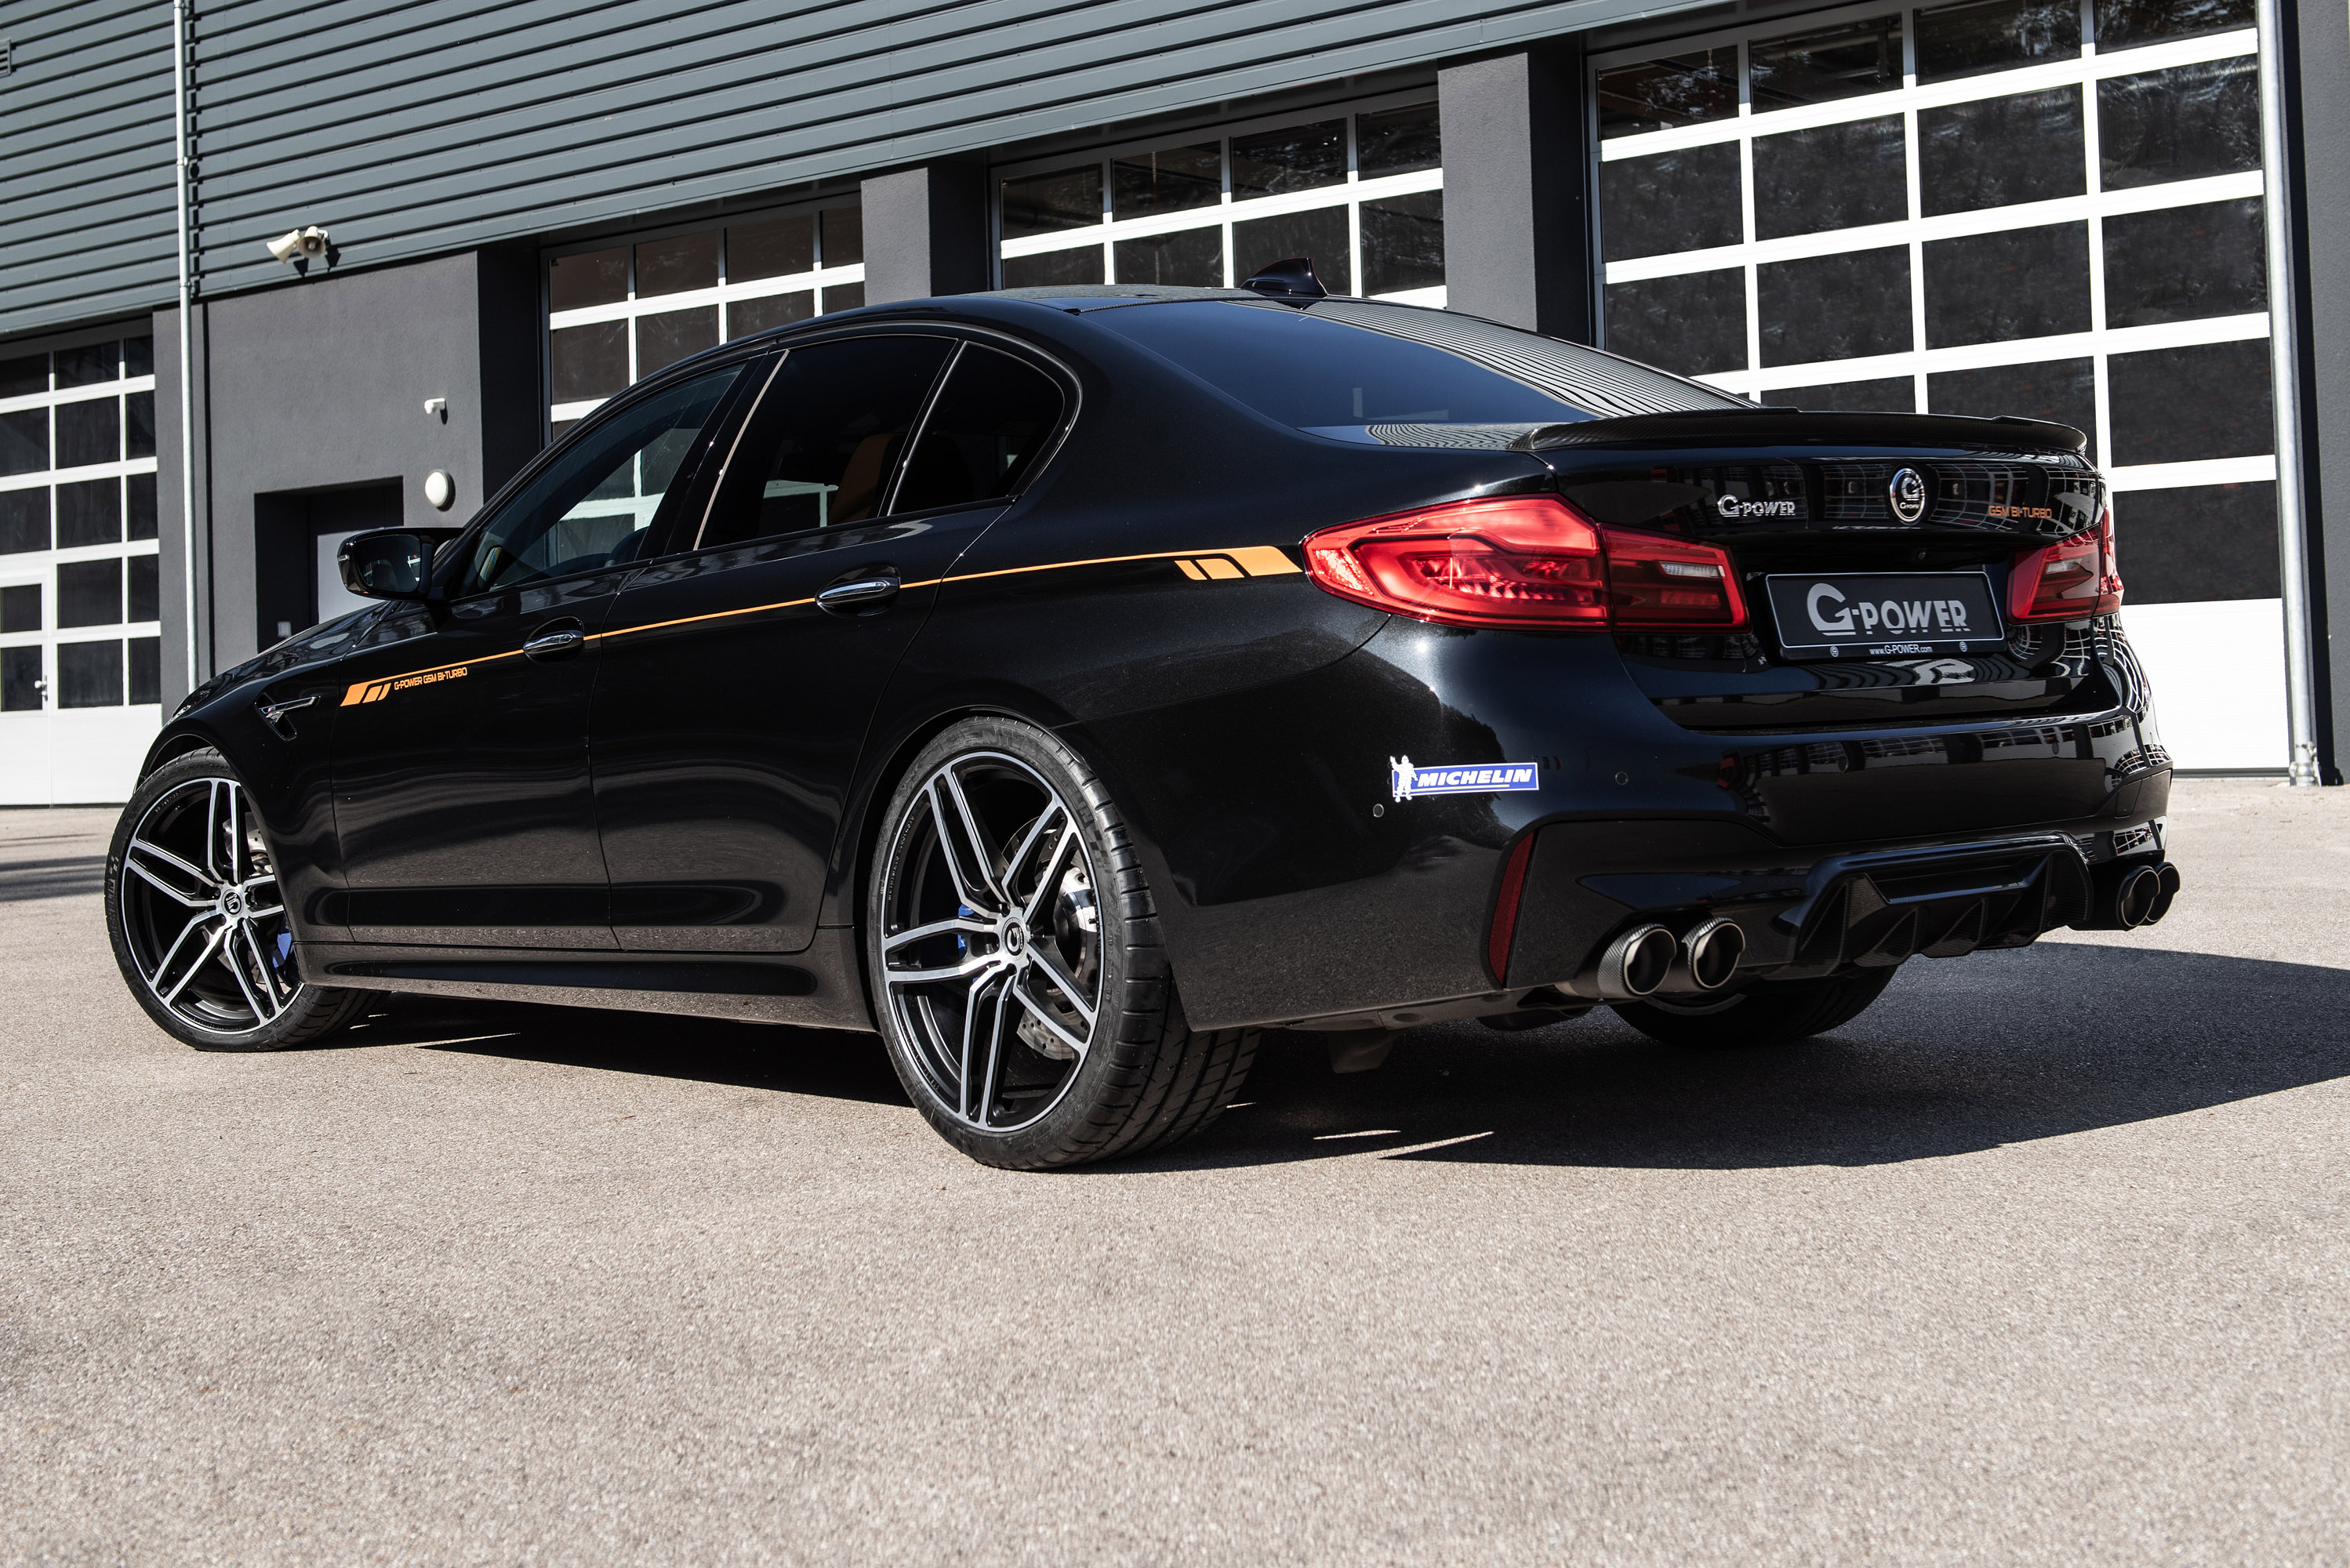 G Power Presents New Bmw M5 Upgrade Concept